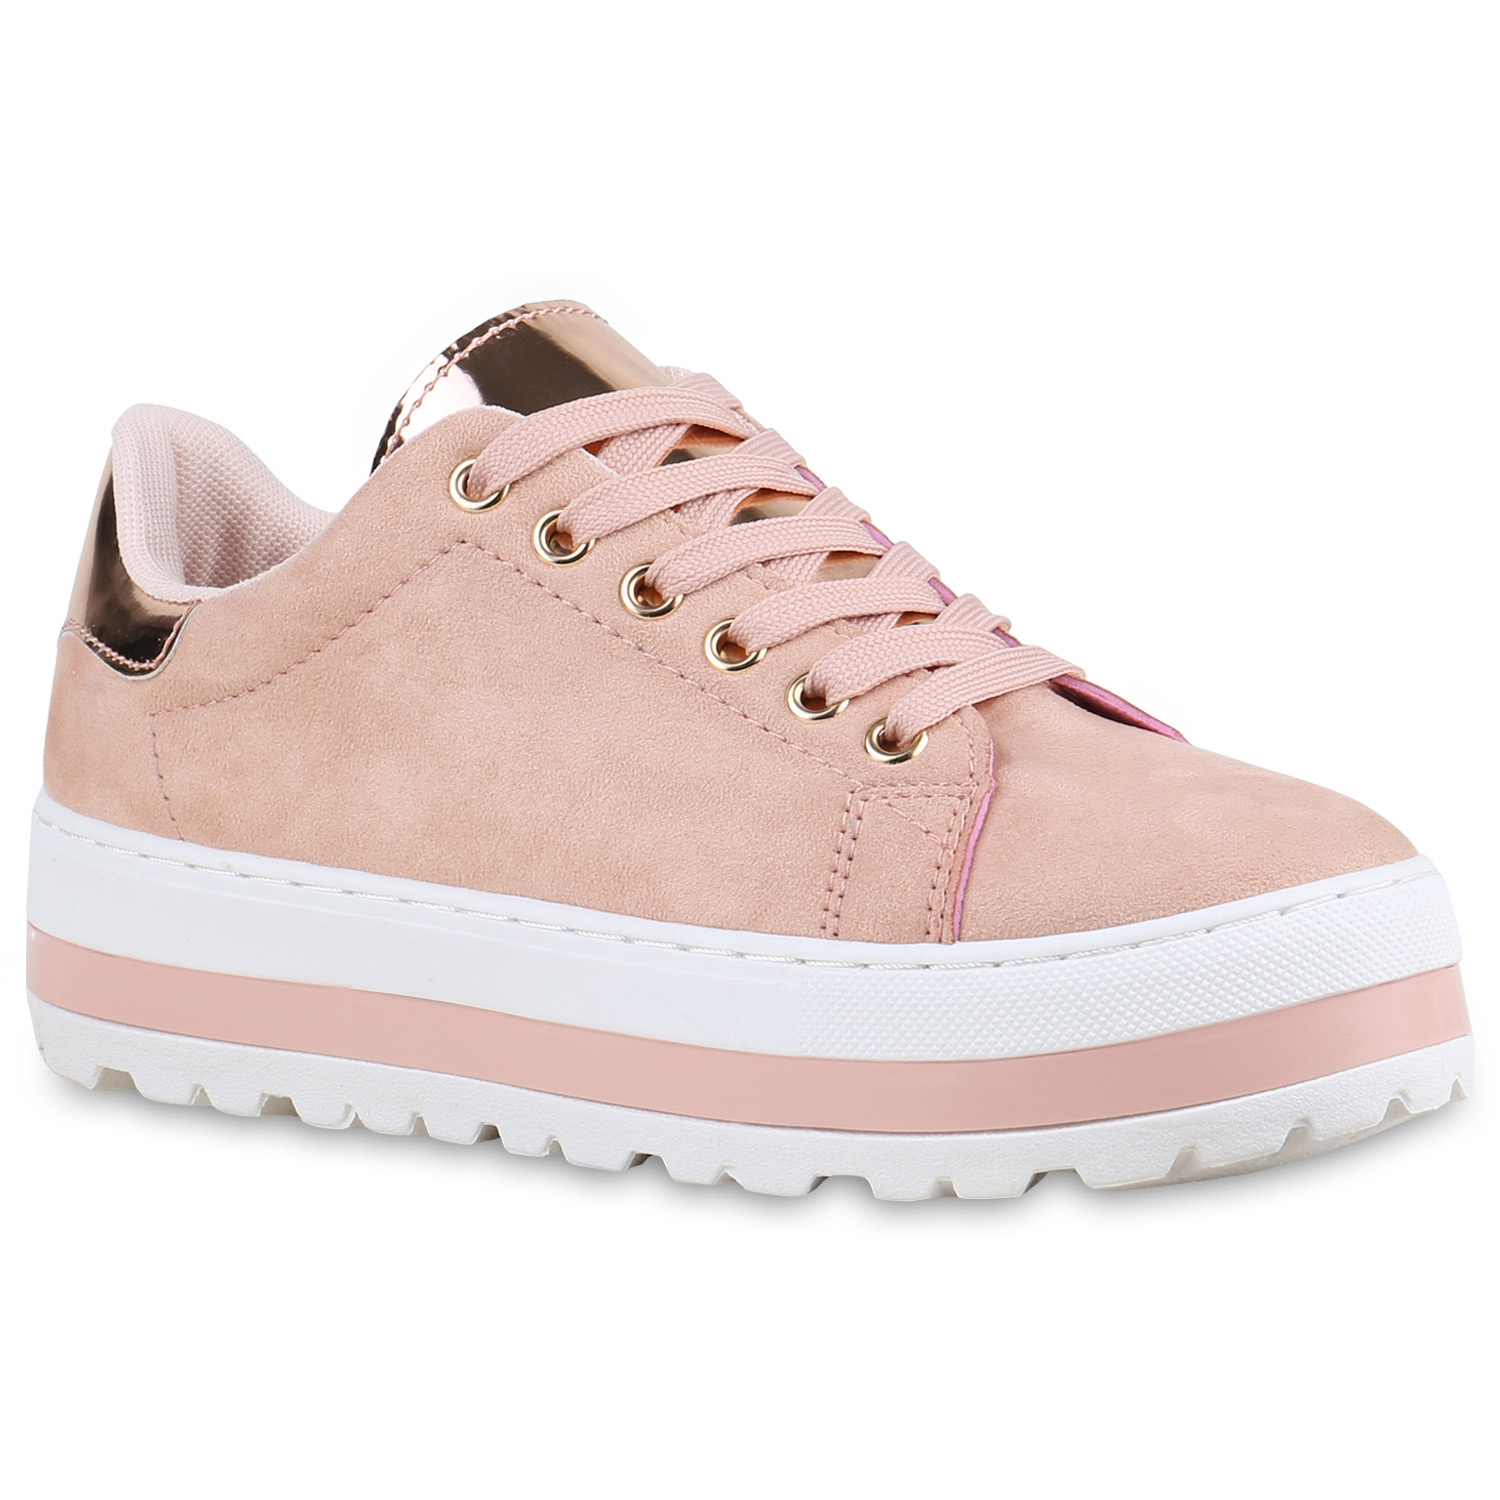 damen plateau sneaker metallic cap sneakers lack schuhe 815358 new look ebay. Black Bedroom Furniture Sets. Home Design Ideas